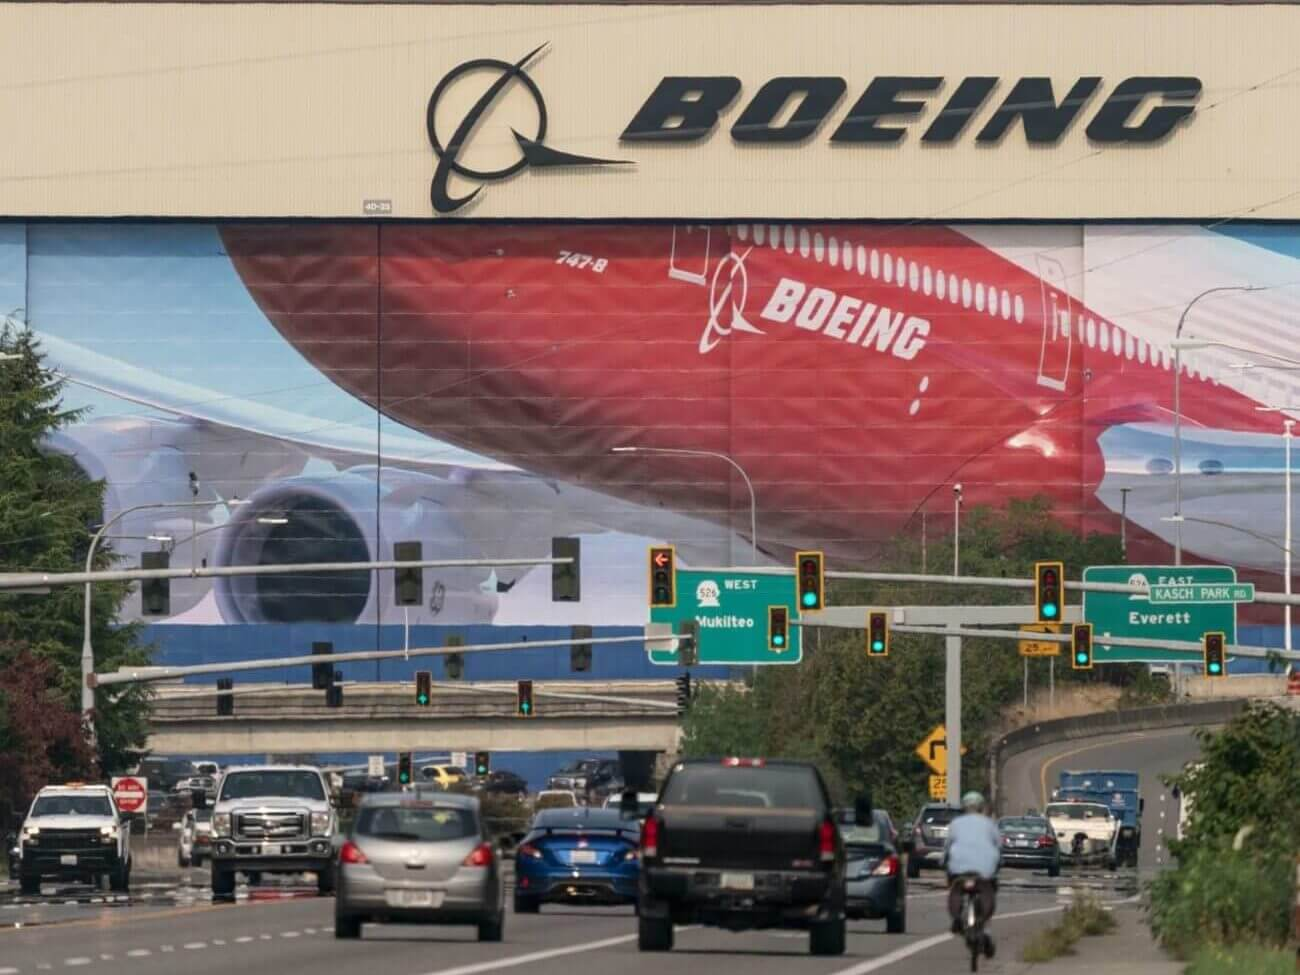 Boeing Is the Most contemporary Company to Wreck out a Adverse Alternate Atmosphere